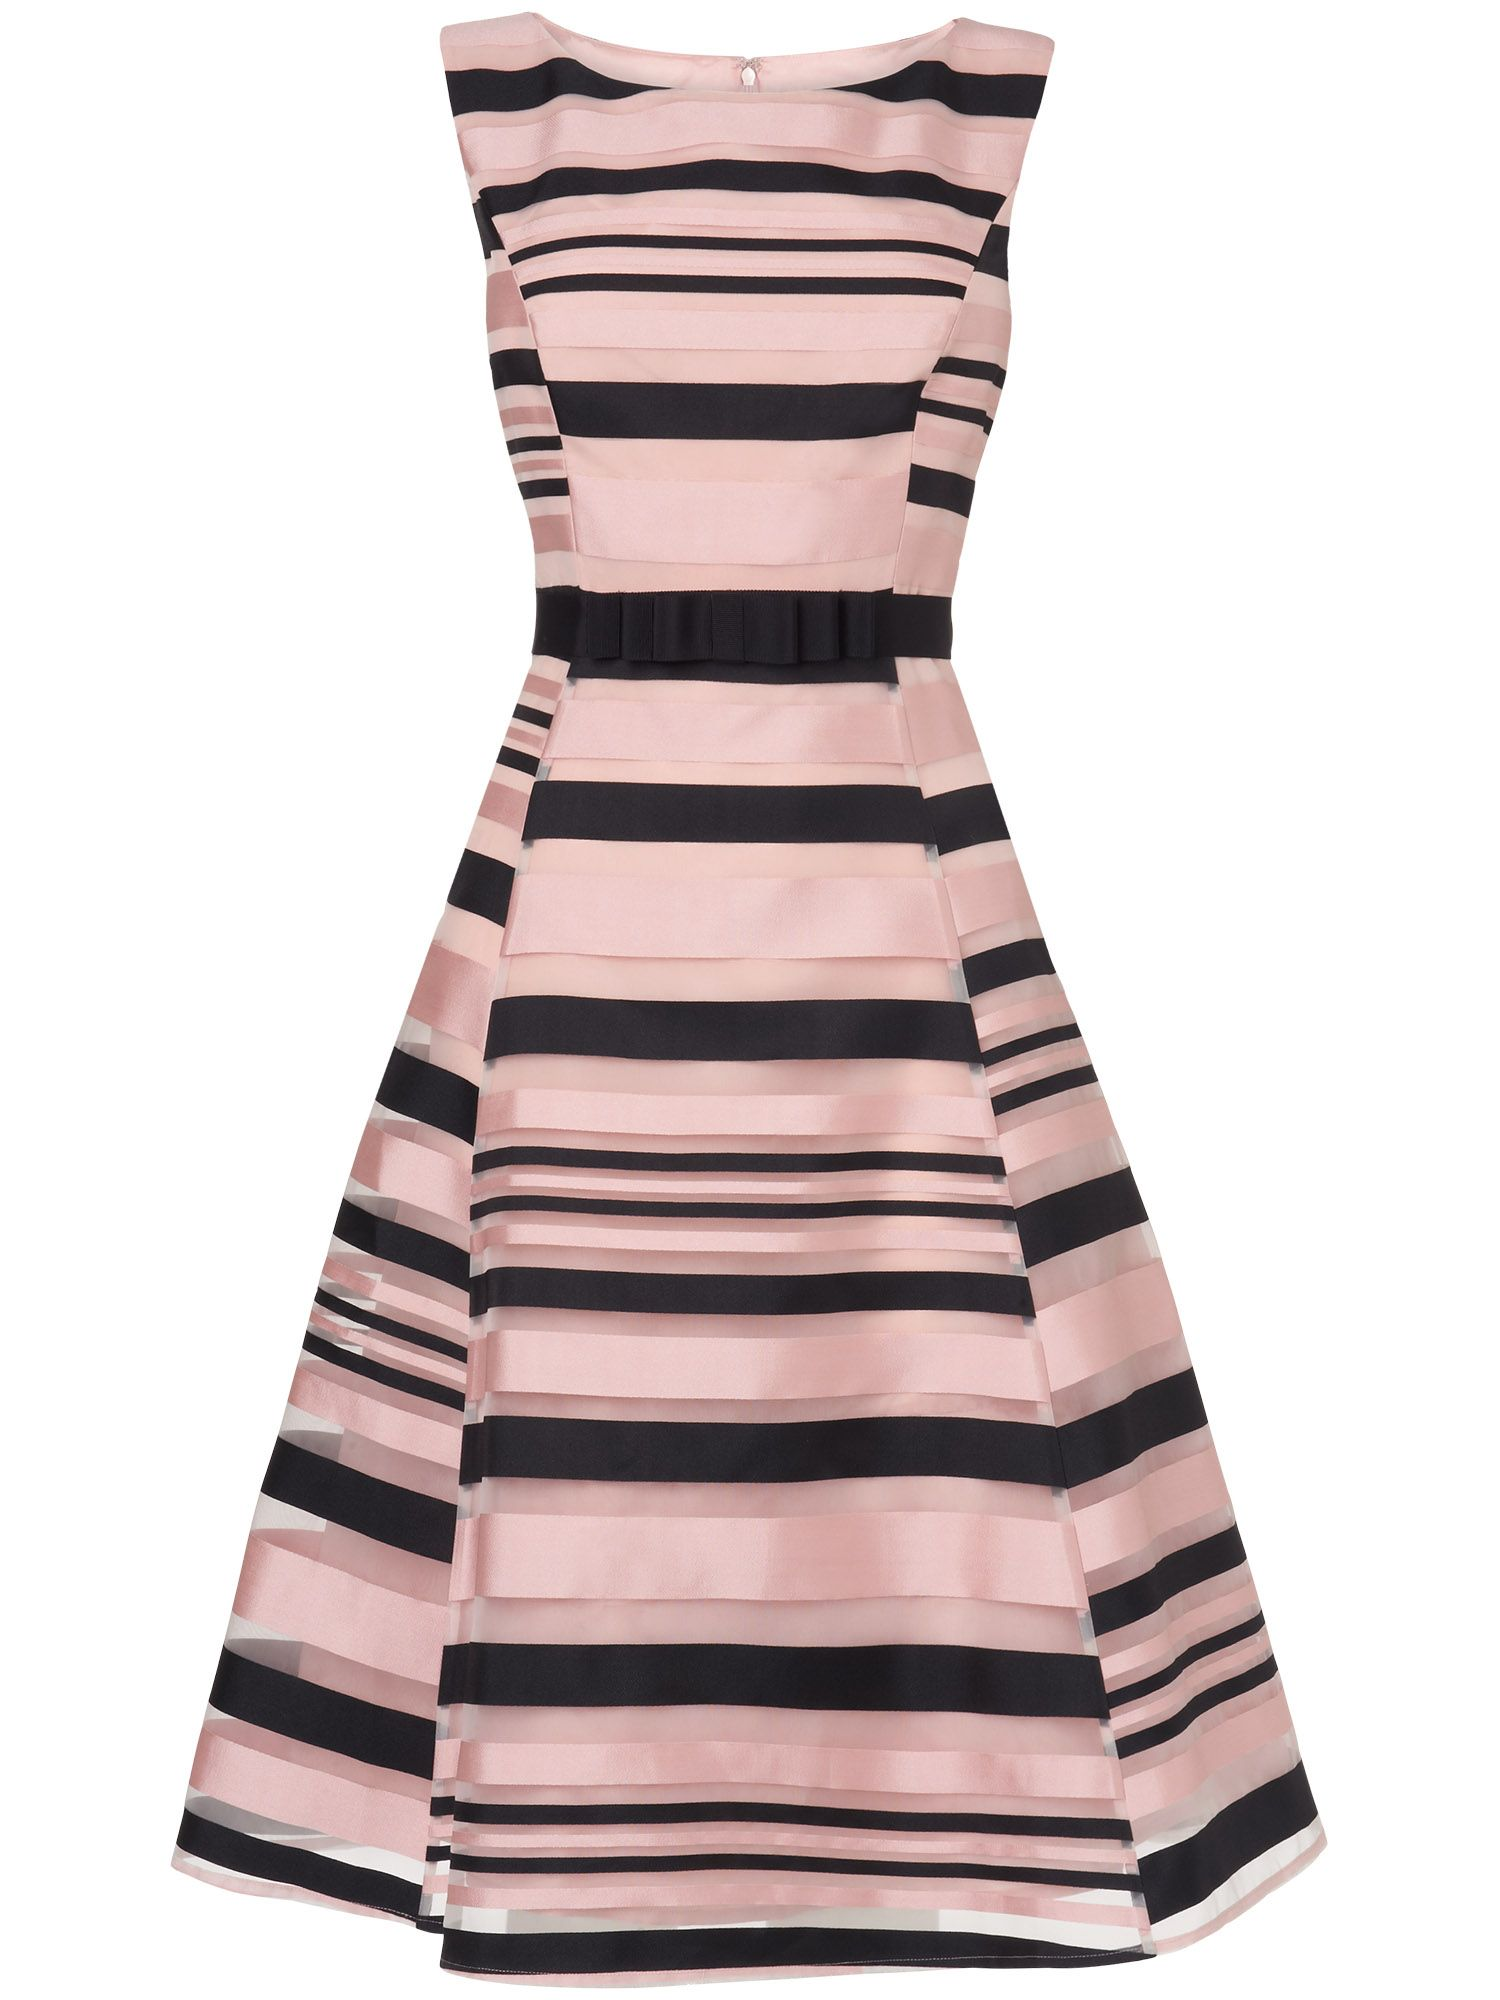 Sinnita stripe dress